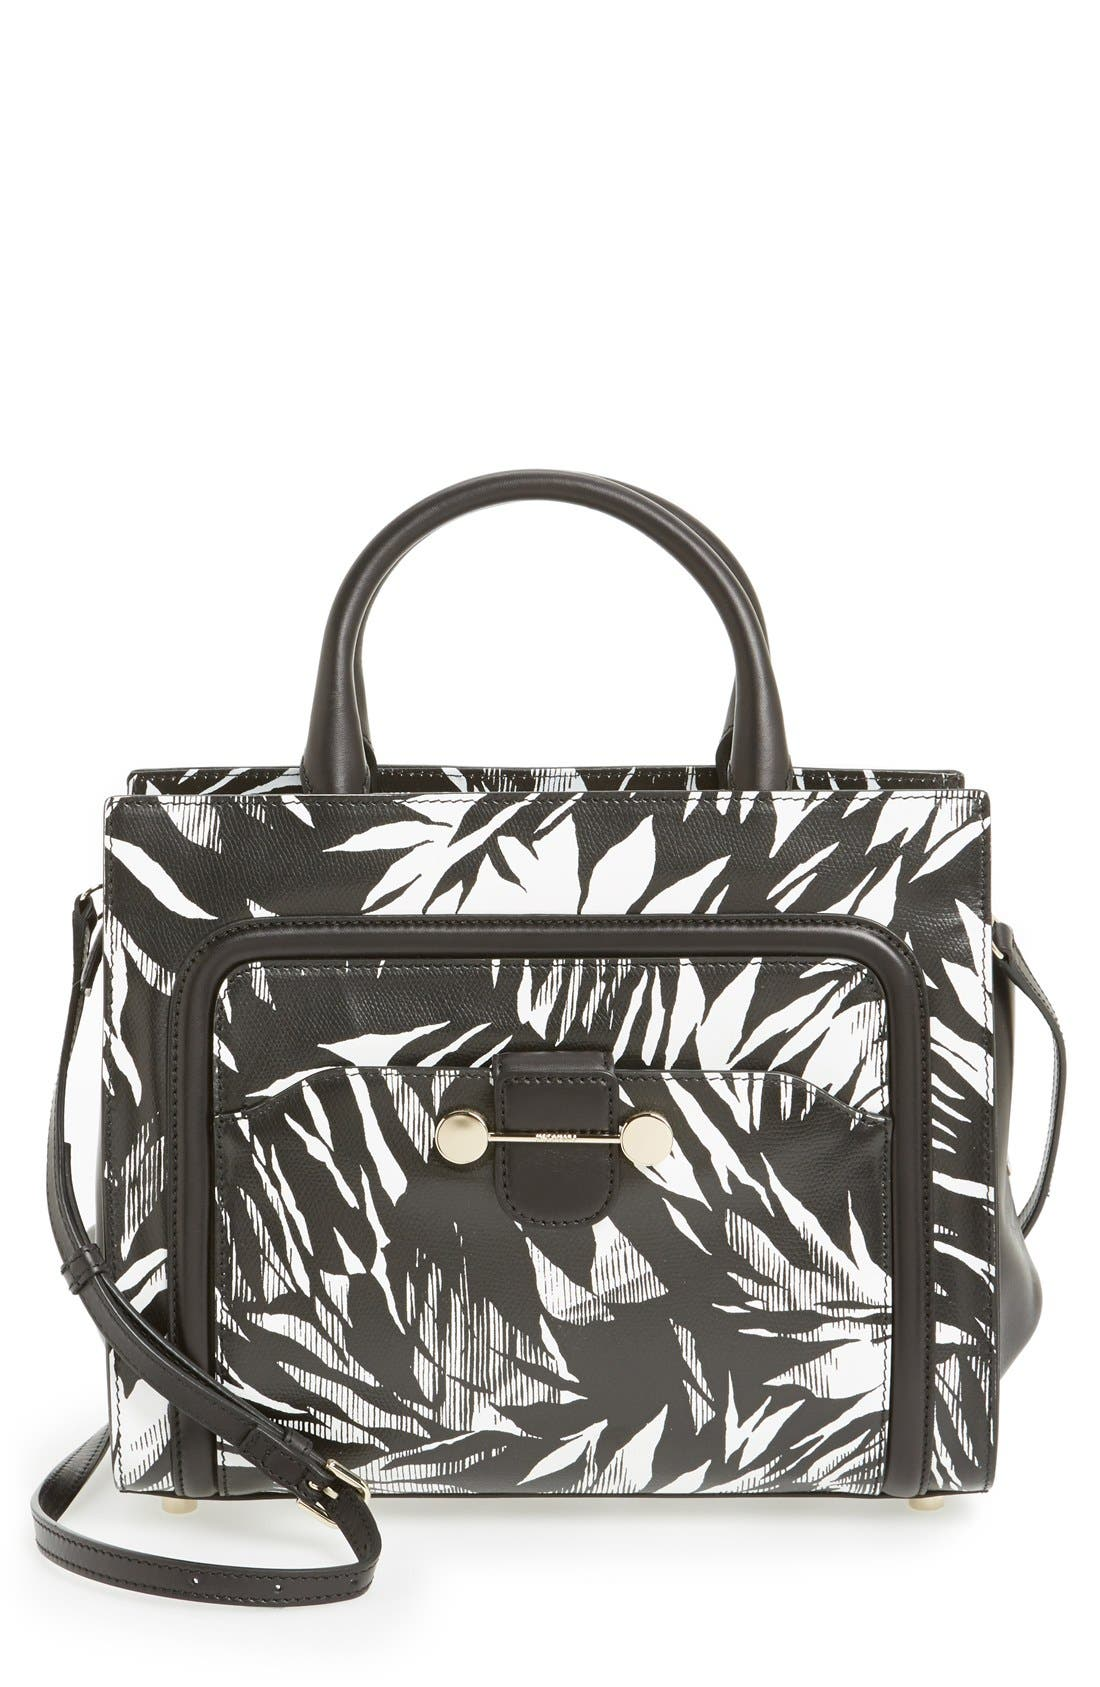 Main Image - Jason Wu 'Daphne 2' Tropical Print Crossbody Bag